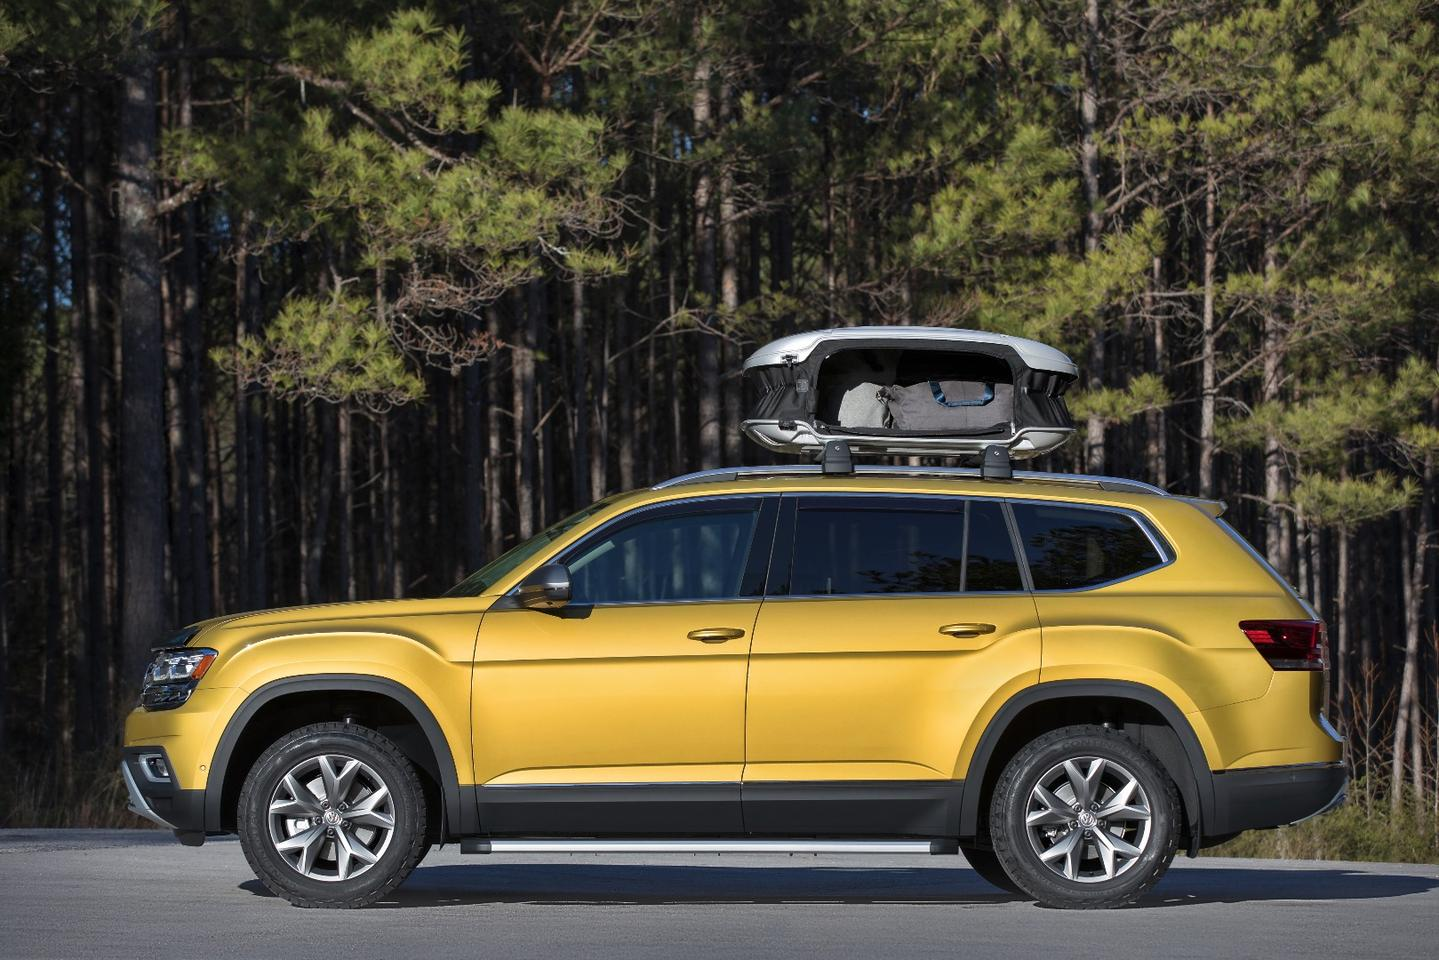 The Volkswagen Atlas gets some more room for adventure with the Weekend Edition